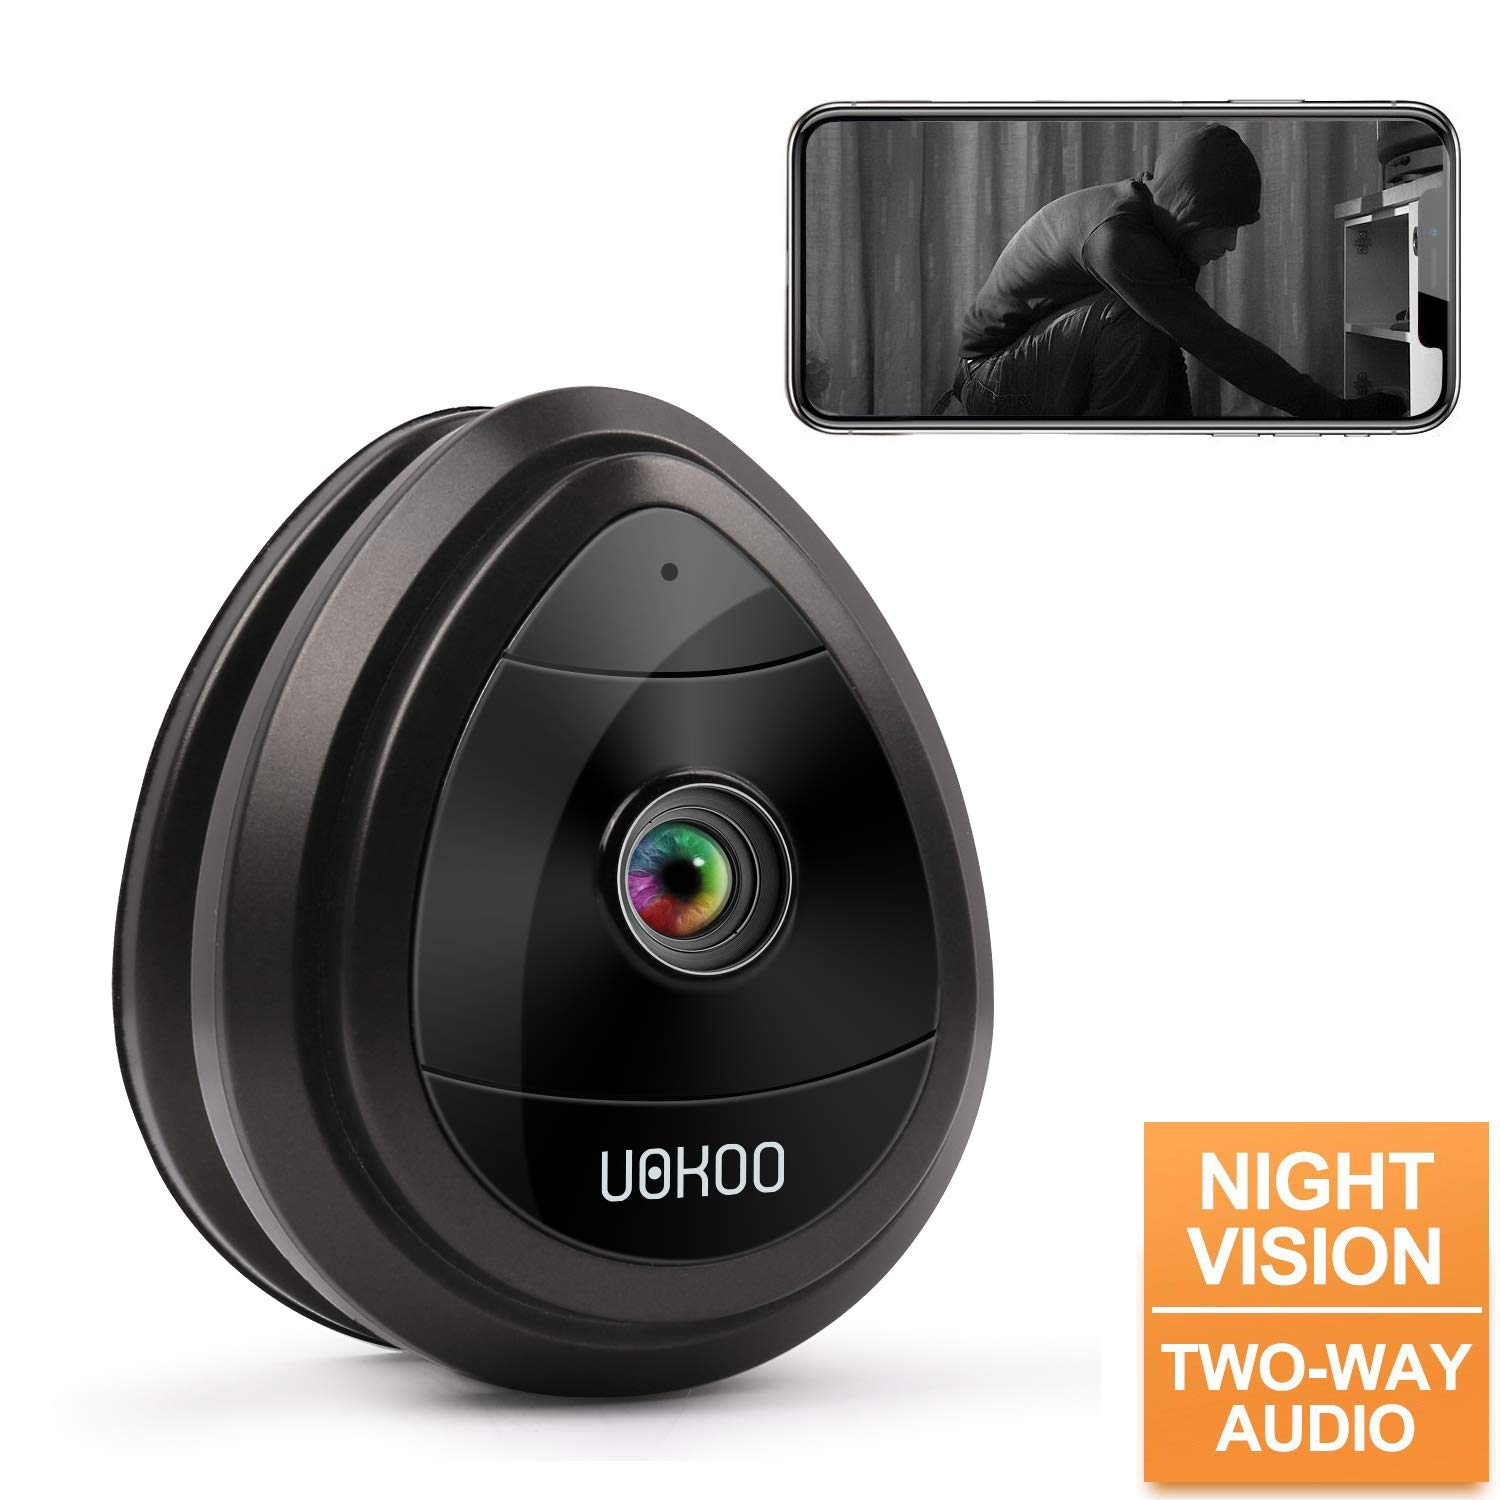 Wireless IP Home Surveillance Security Camera System with Night Vision Activity Detection Alert Baby Monitor, Remote Monitor with iOS, Android App